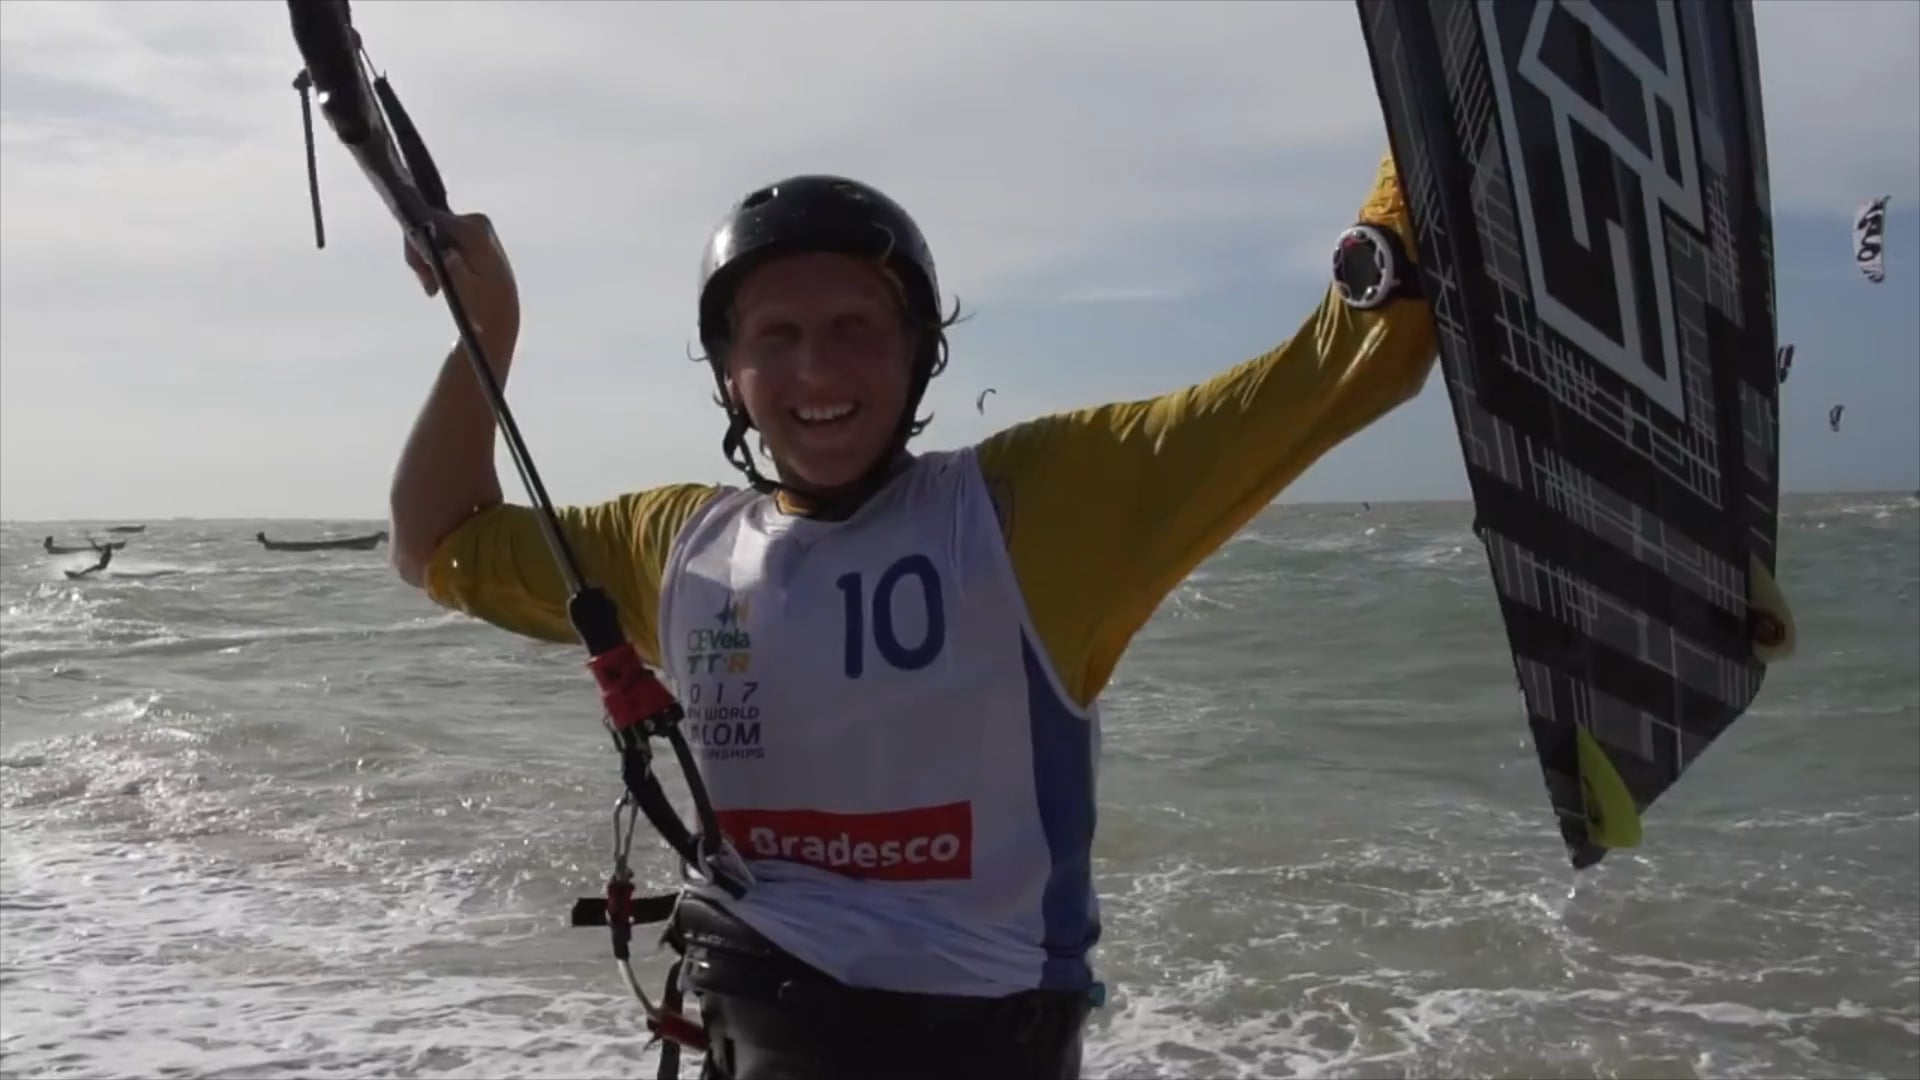 BRAZIL Twin Tip YOUTH WORLD CUP race 2017 - with Epic Kites Kiteboarding